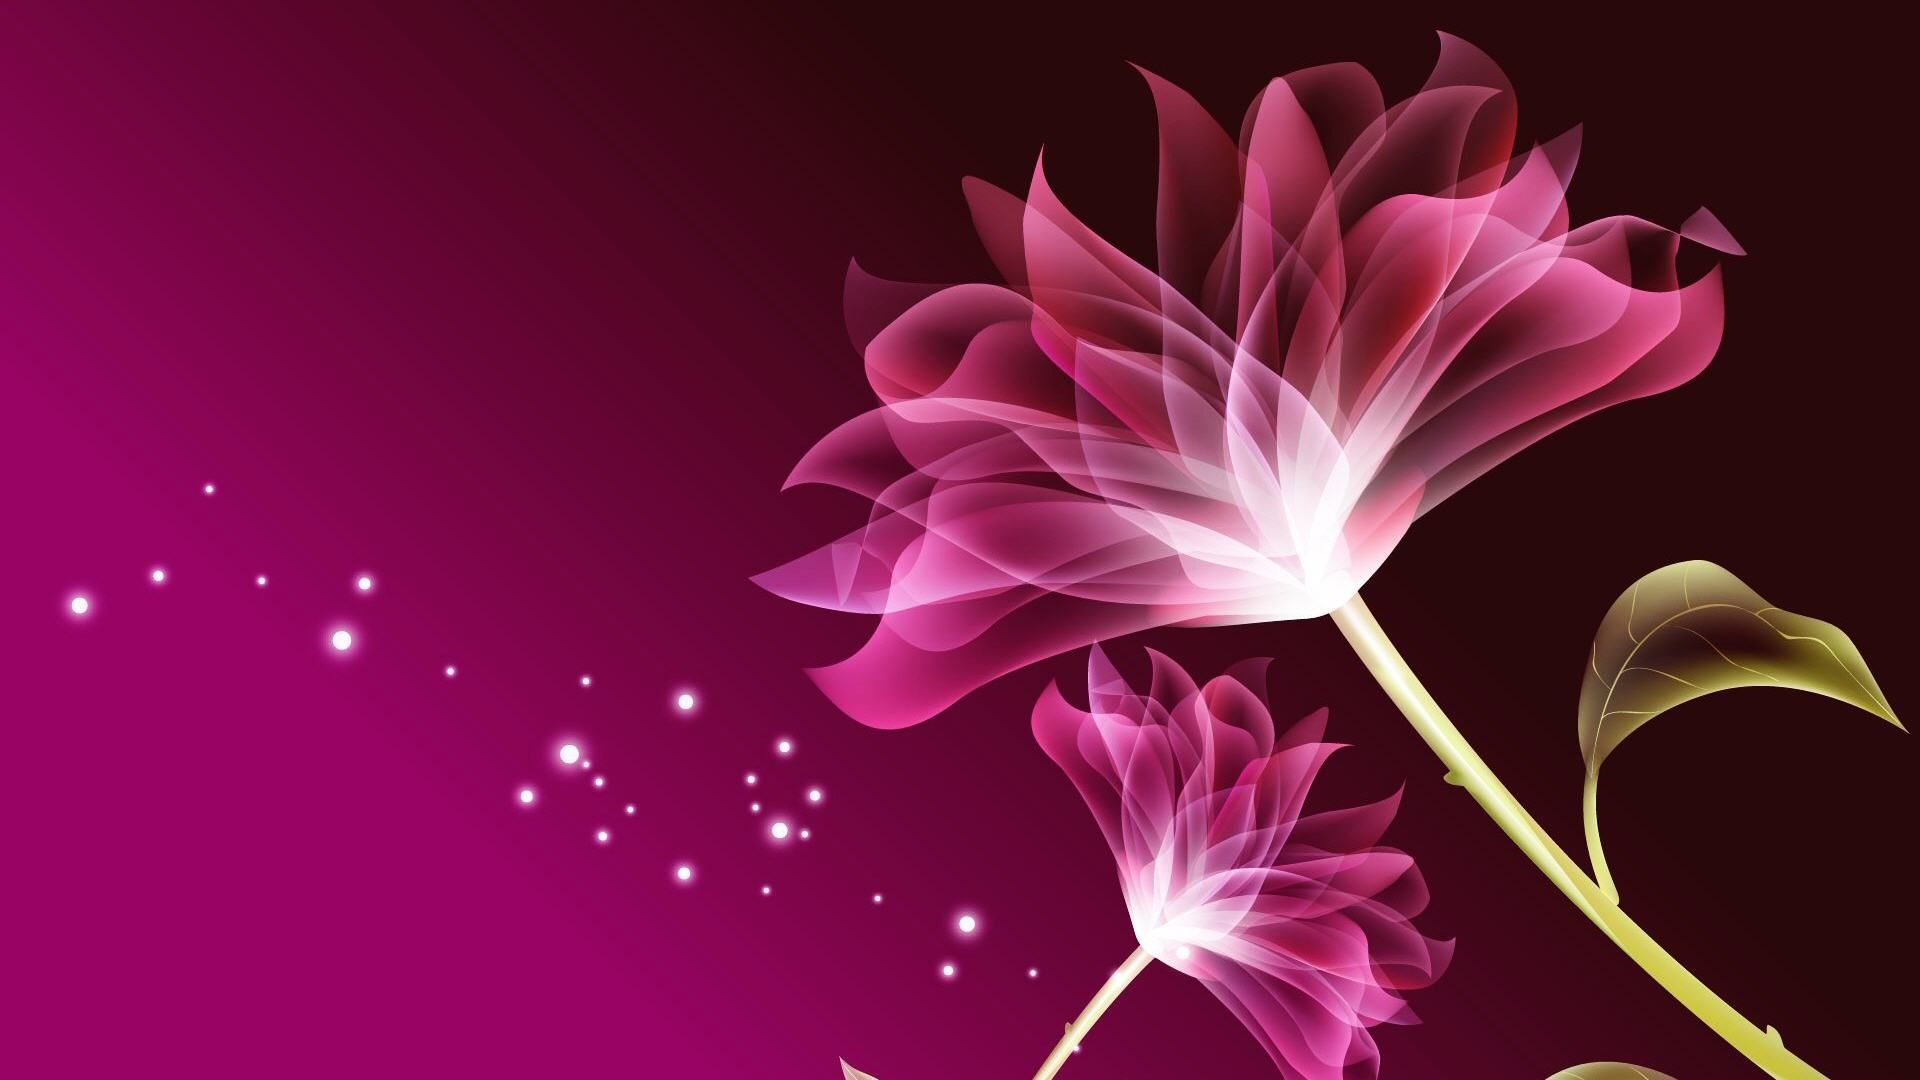 Nice Flowers Wallpaper | HD Desktop Background